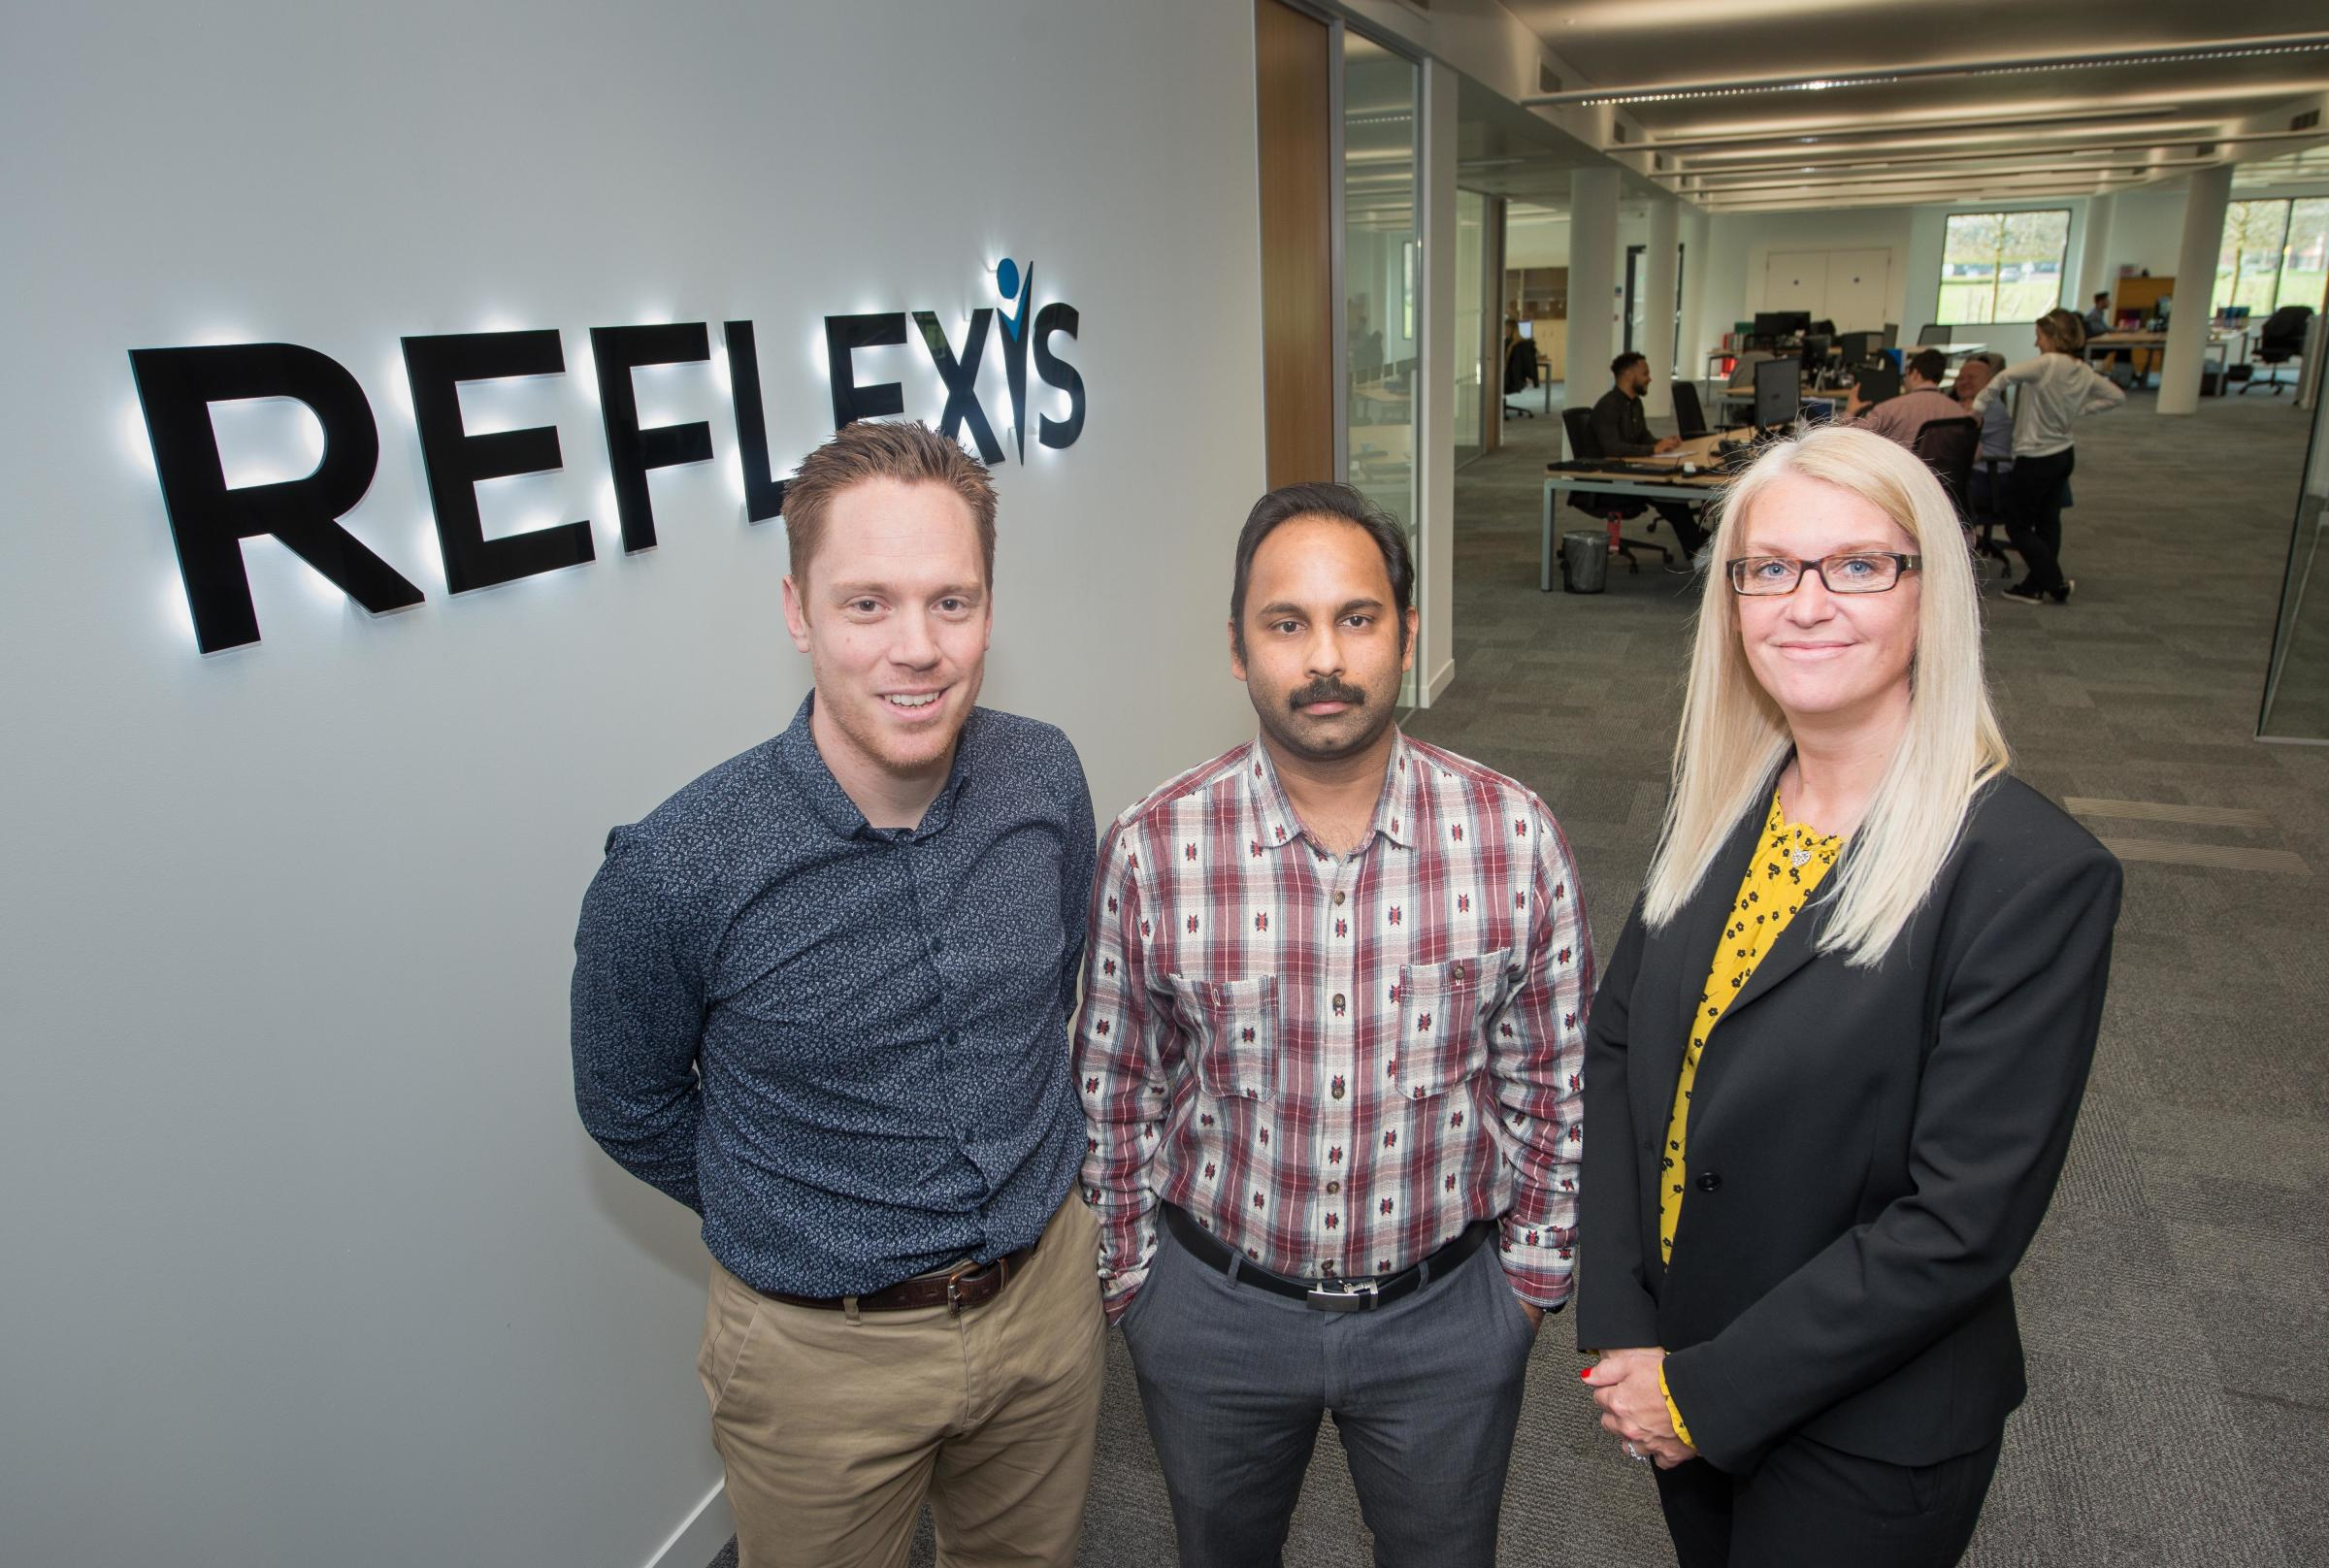 Paul Strudley, finance director, EMEA; Jagadesh Thondapu, director of technology, both from Reflexis, and Wendy Scott, customer manager, at Chineham Park.